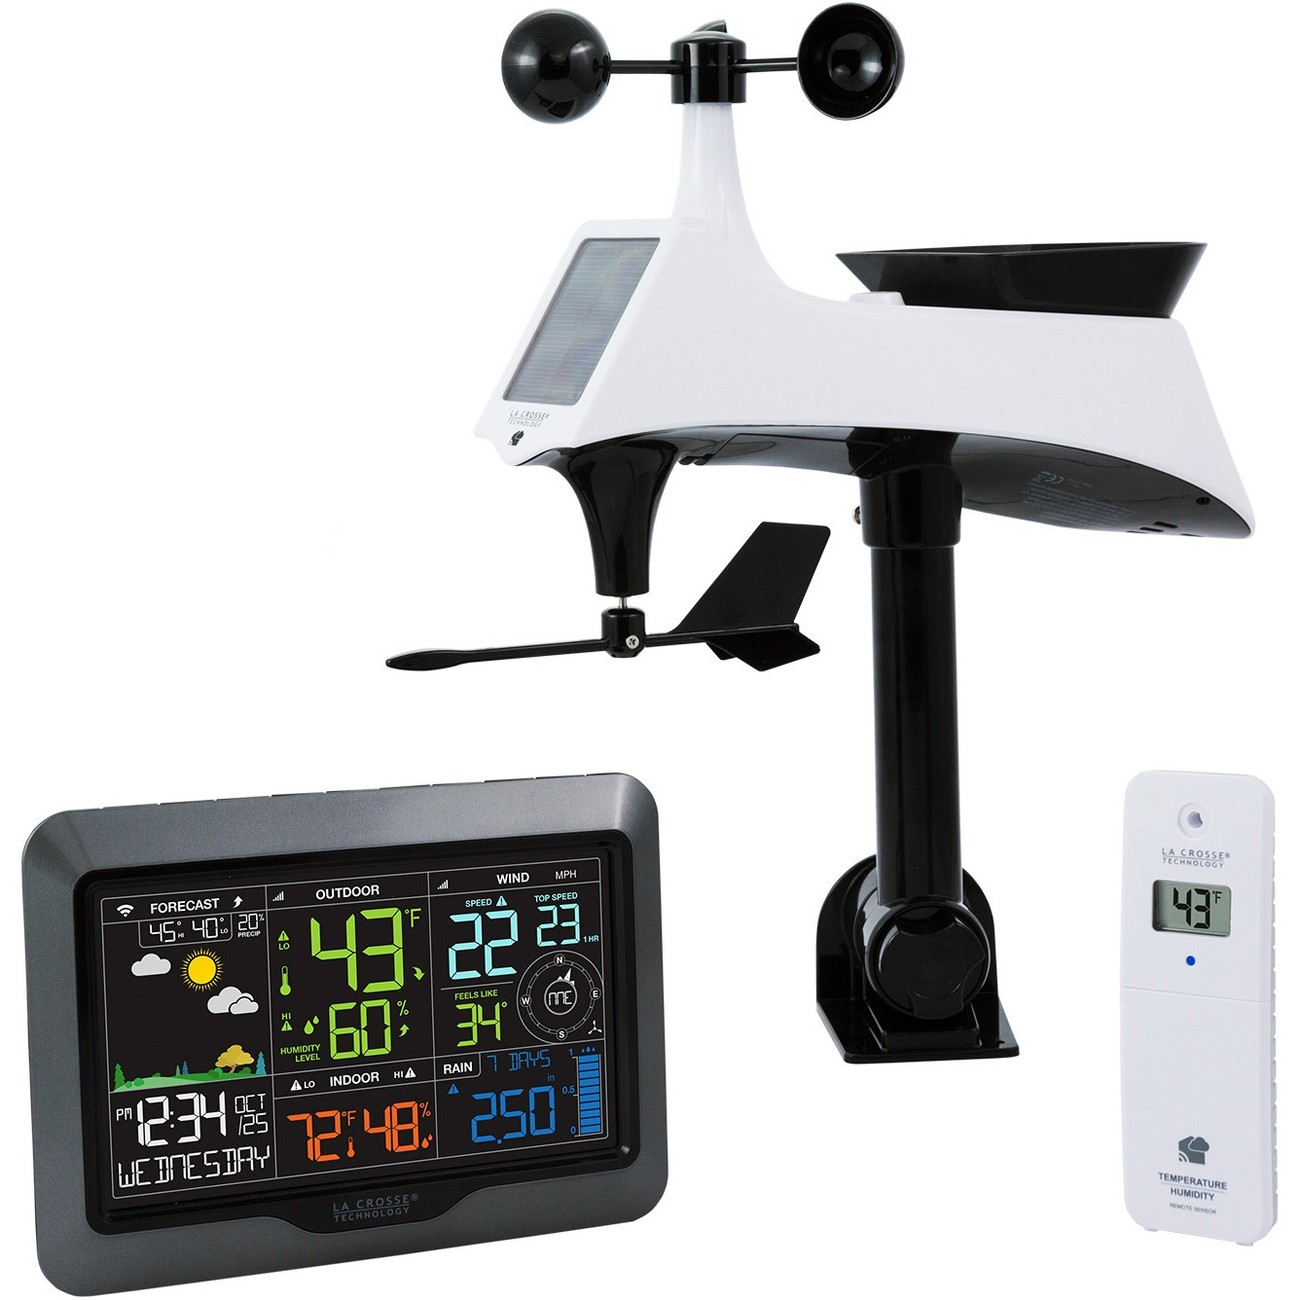 La Crosse Technology V40-PRO Professional Remote Monitoring Weather Station by La Crosse Technology